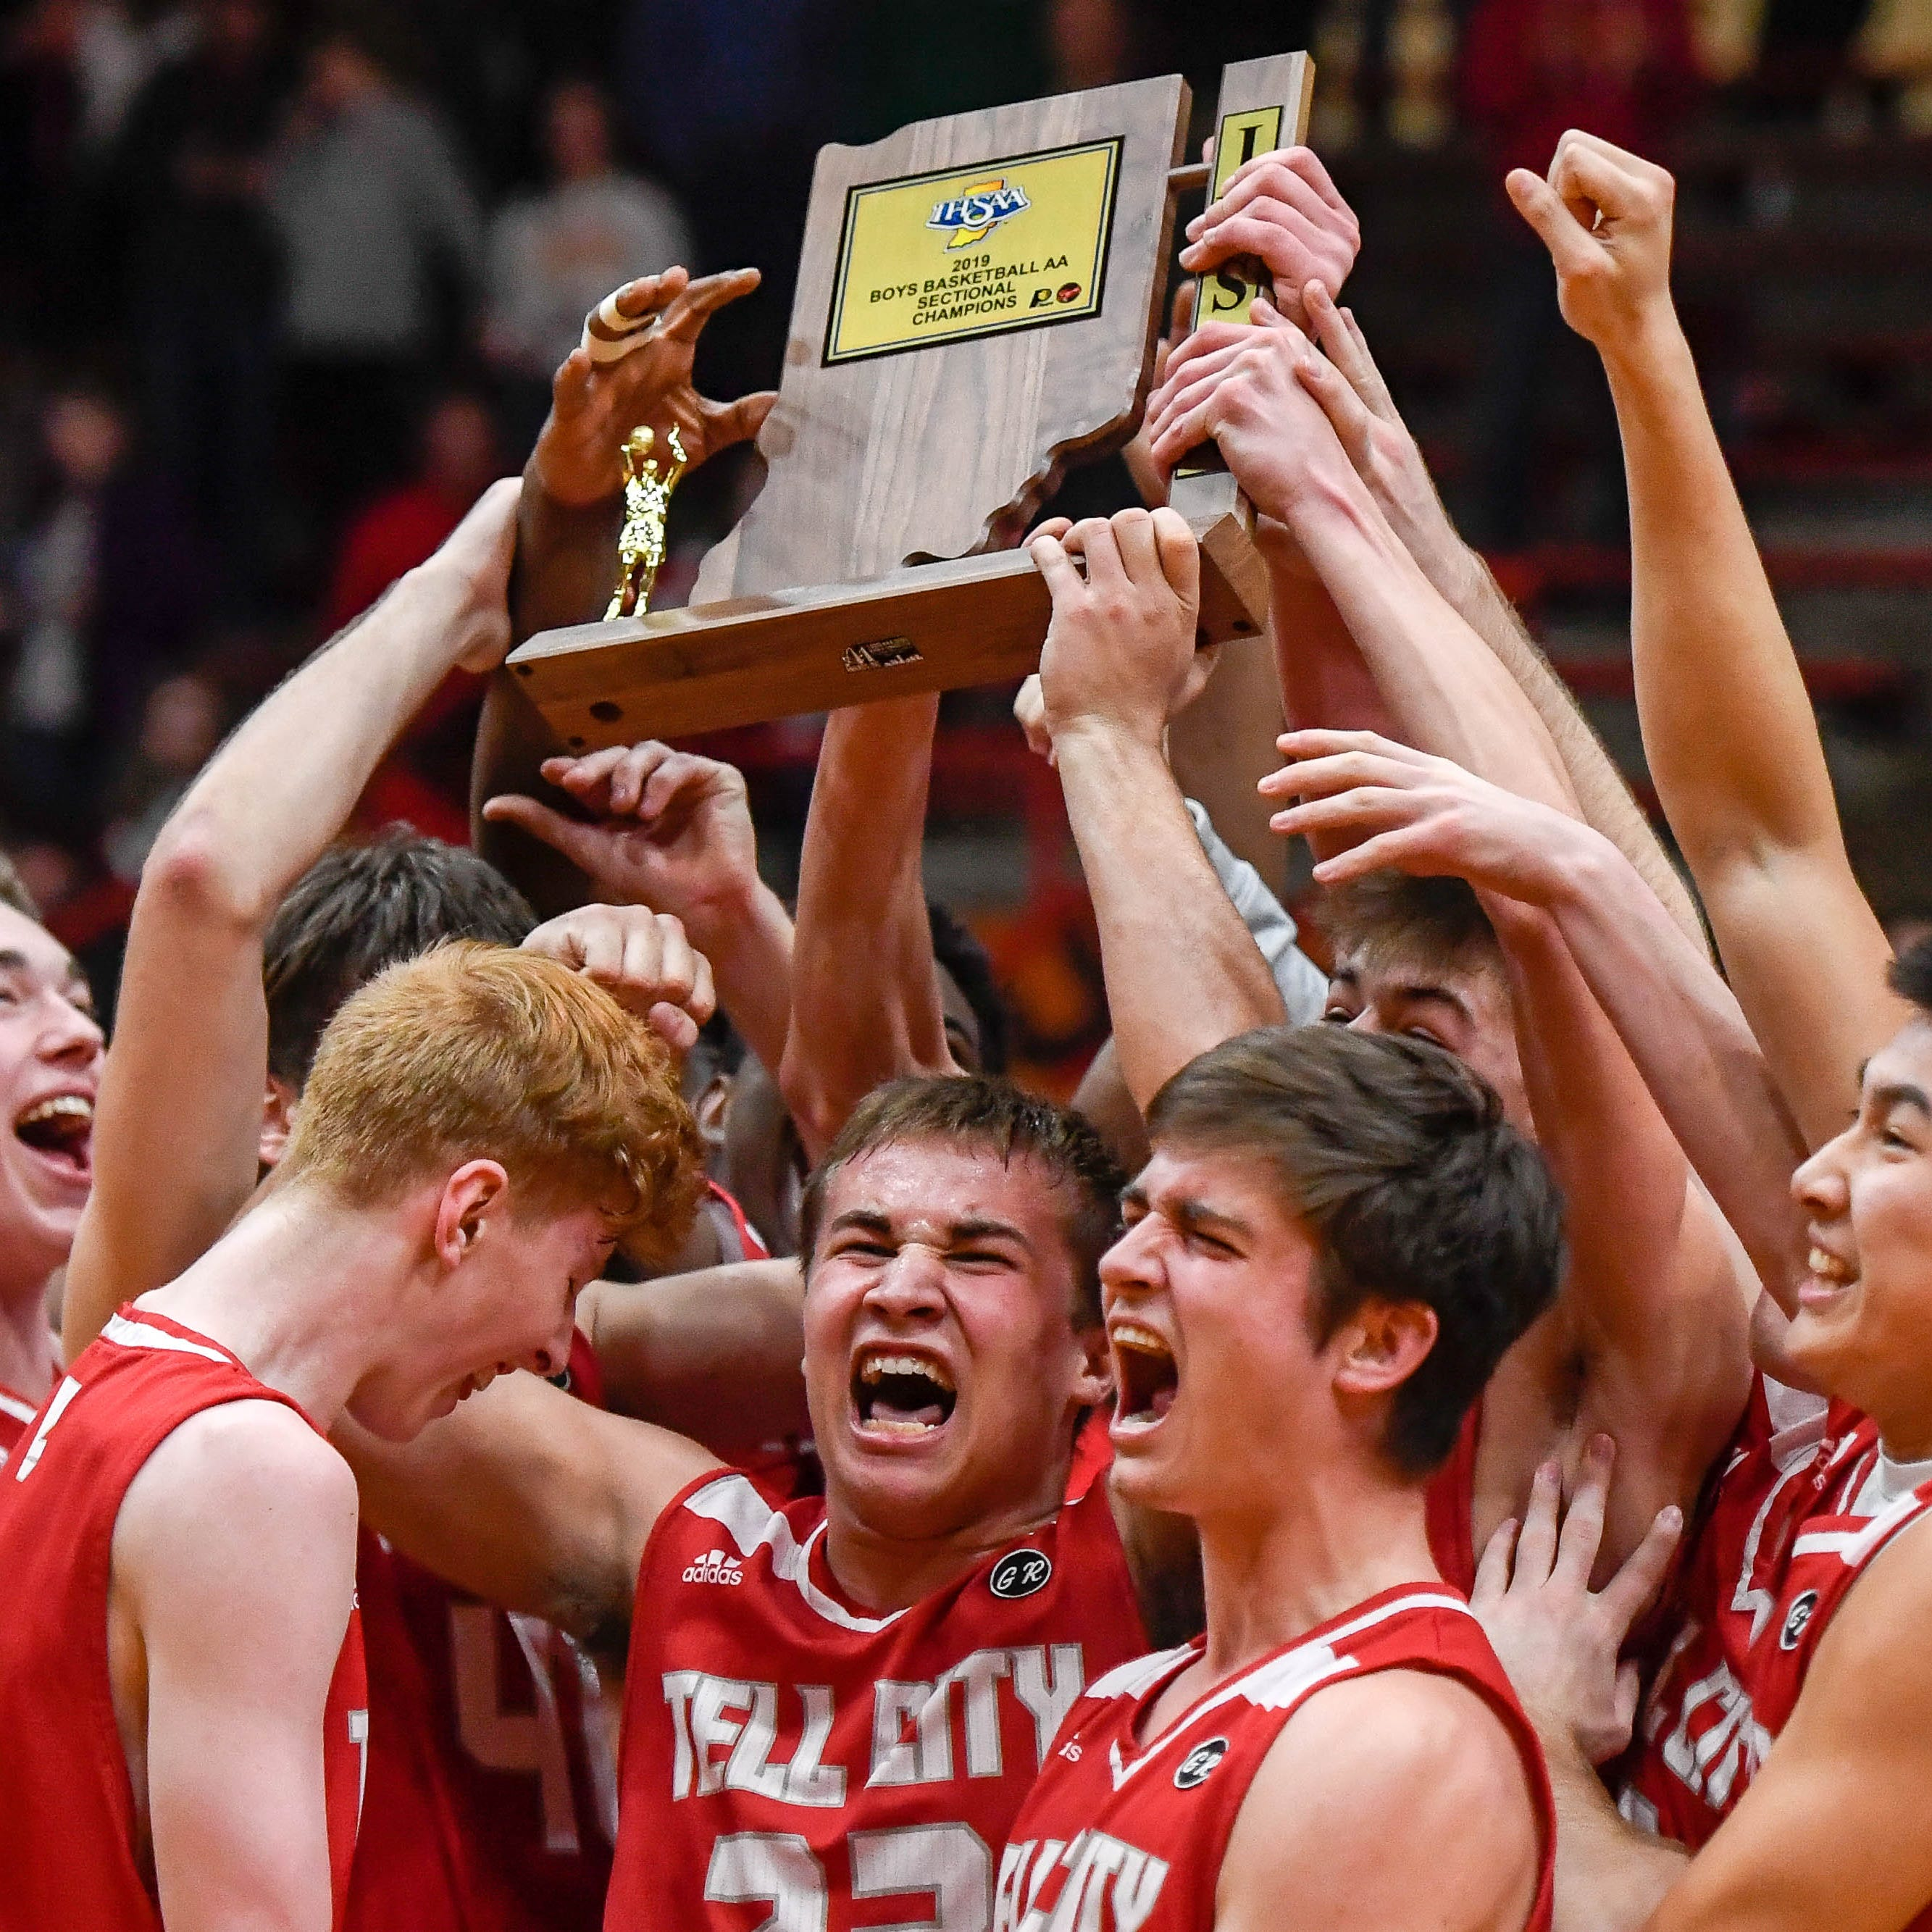 'Like a dream': Tell City basketball wins first sectional title since 1993